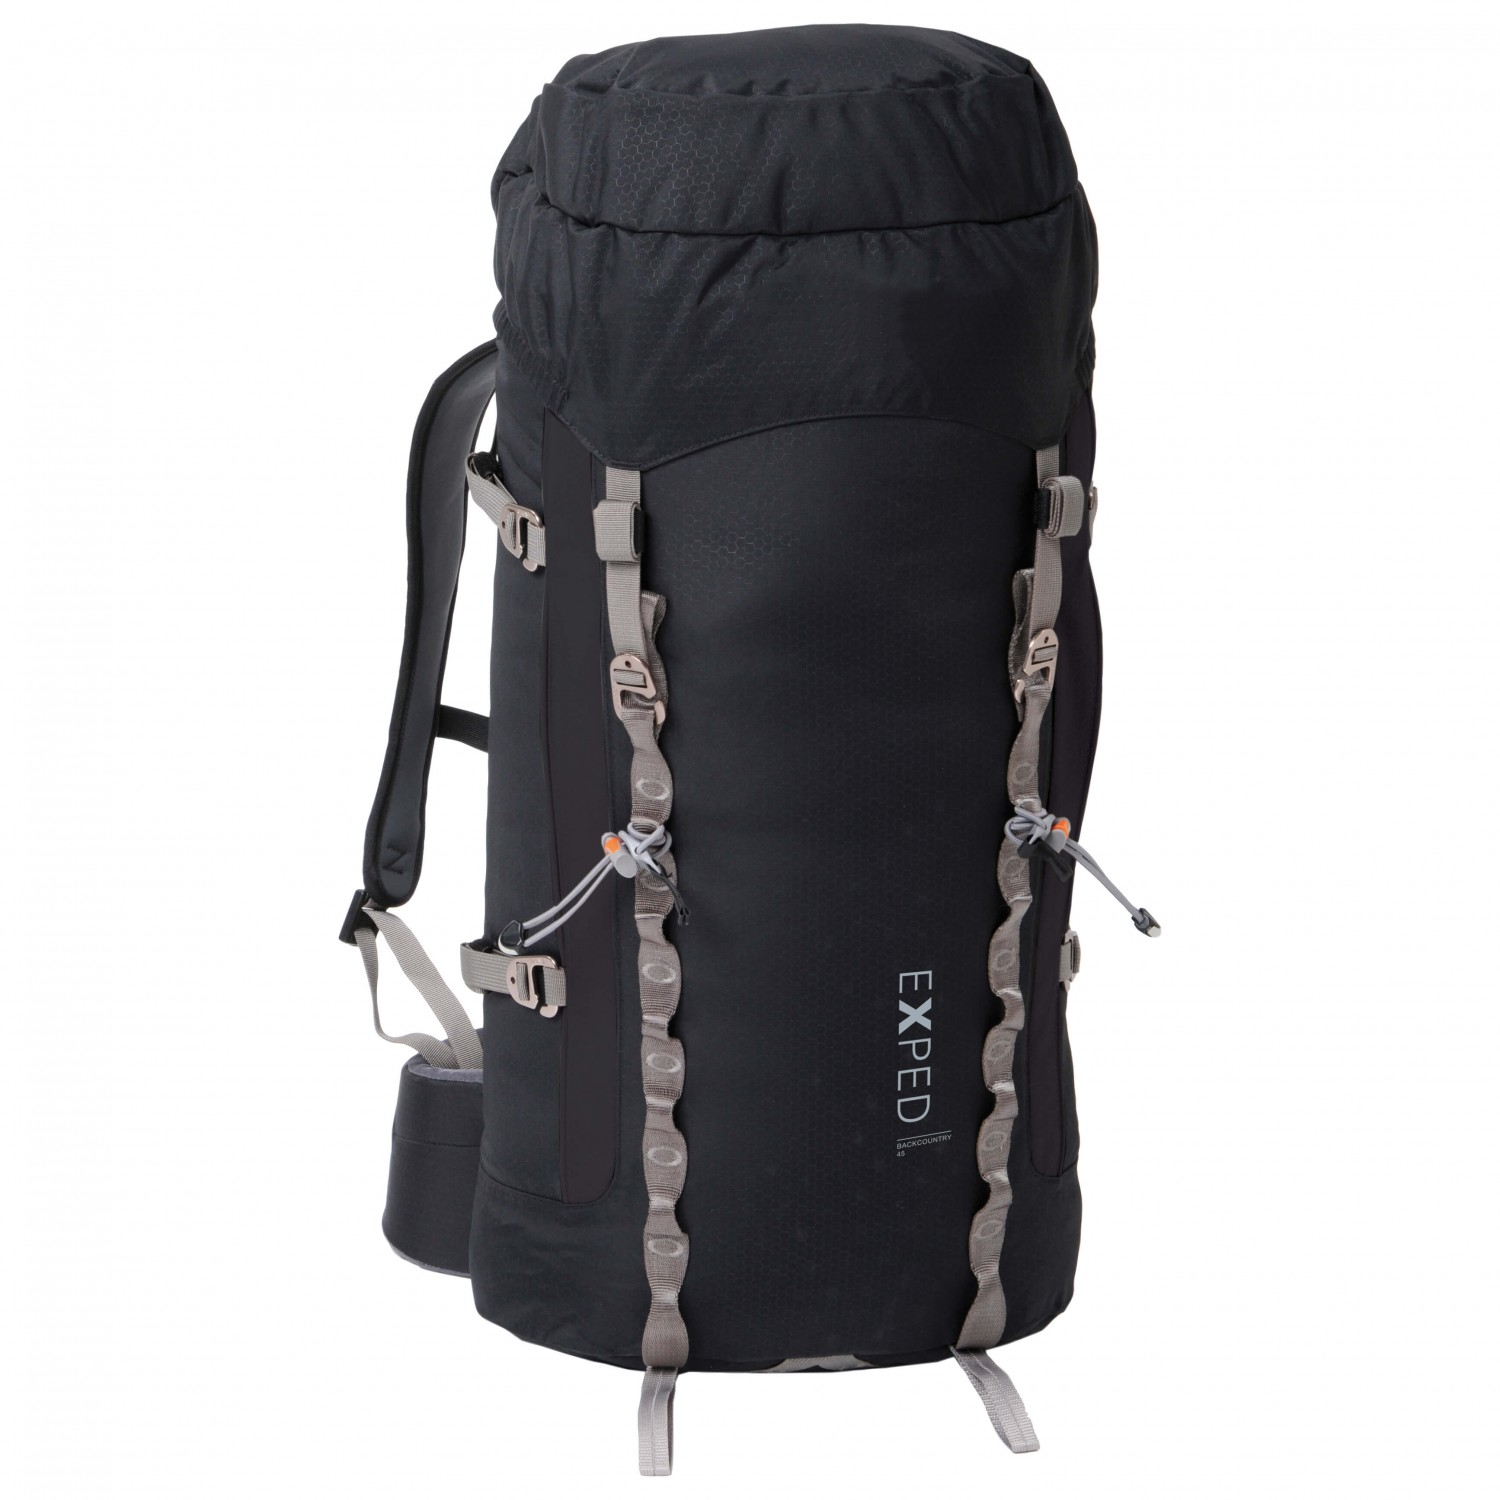 Exped Backcountry 45